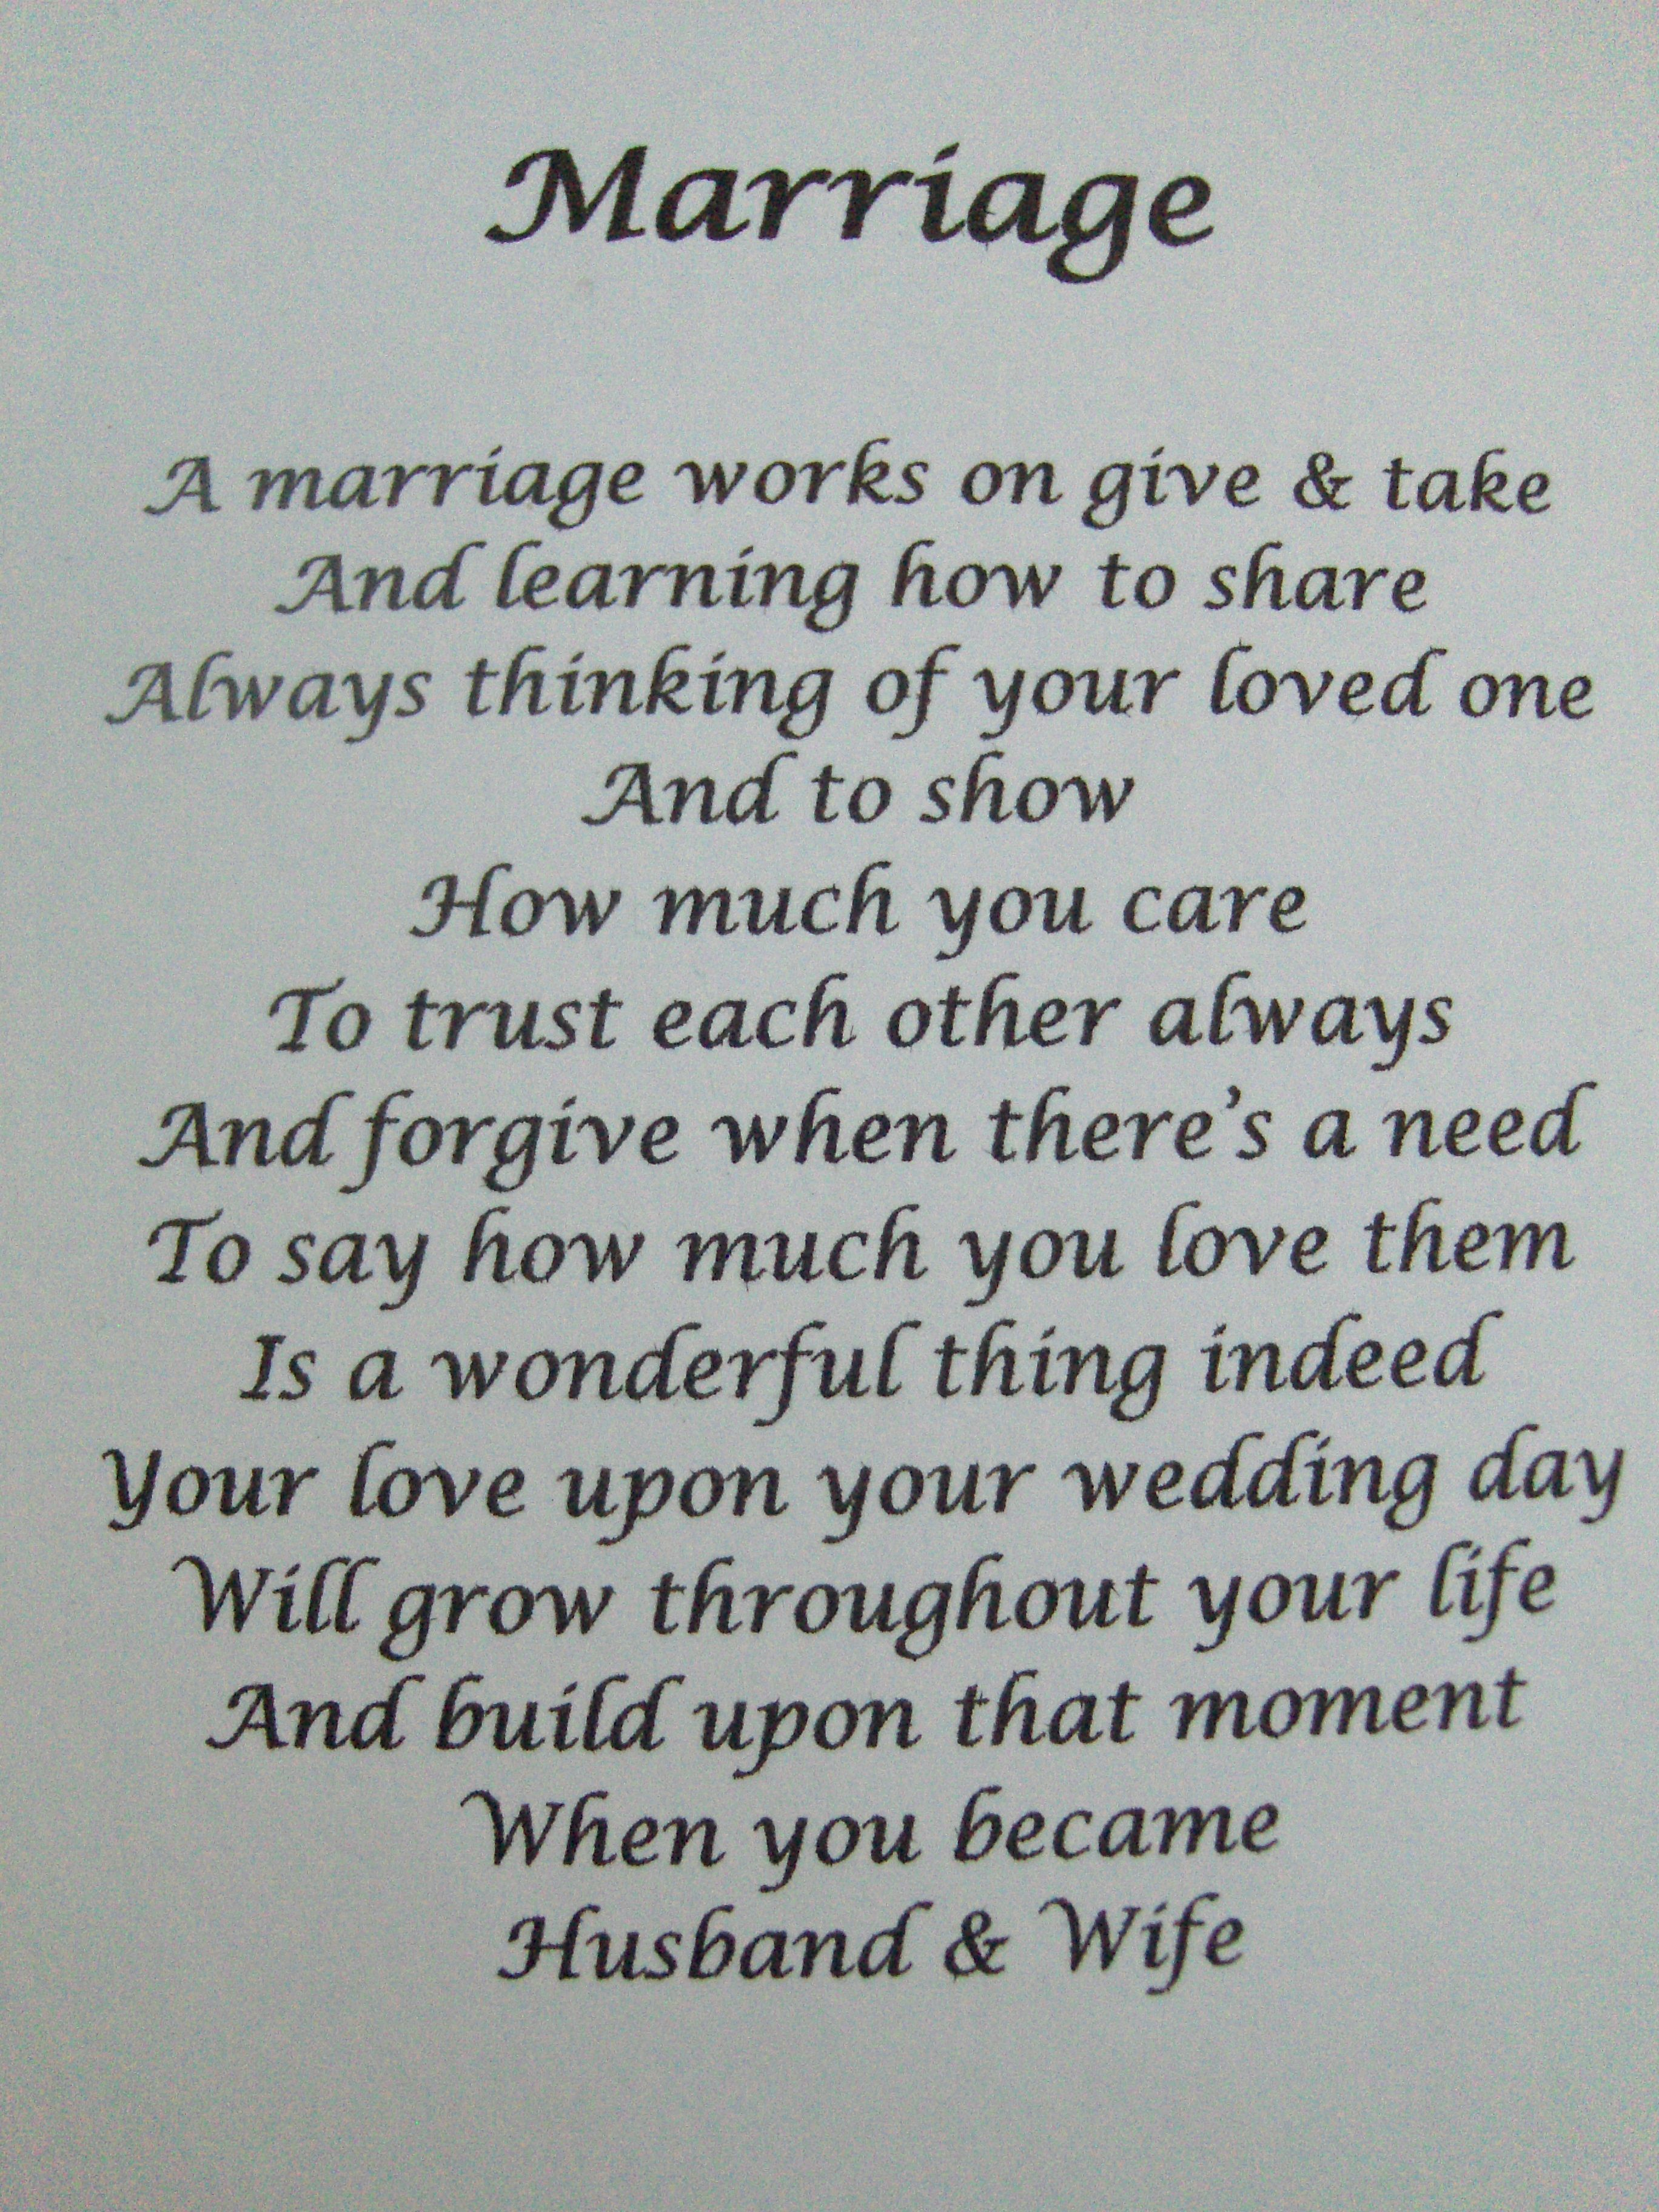 Marriage poems image by Elsie Gonzalez on quotes for